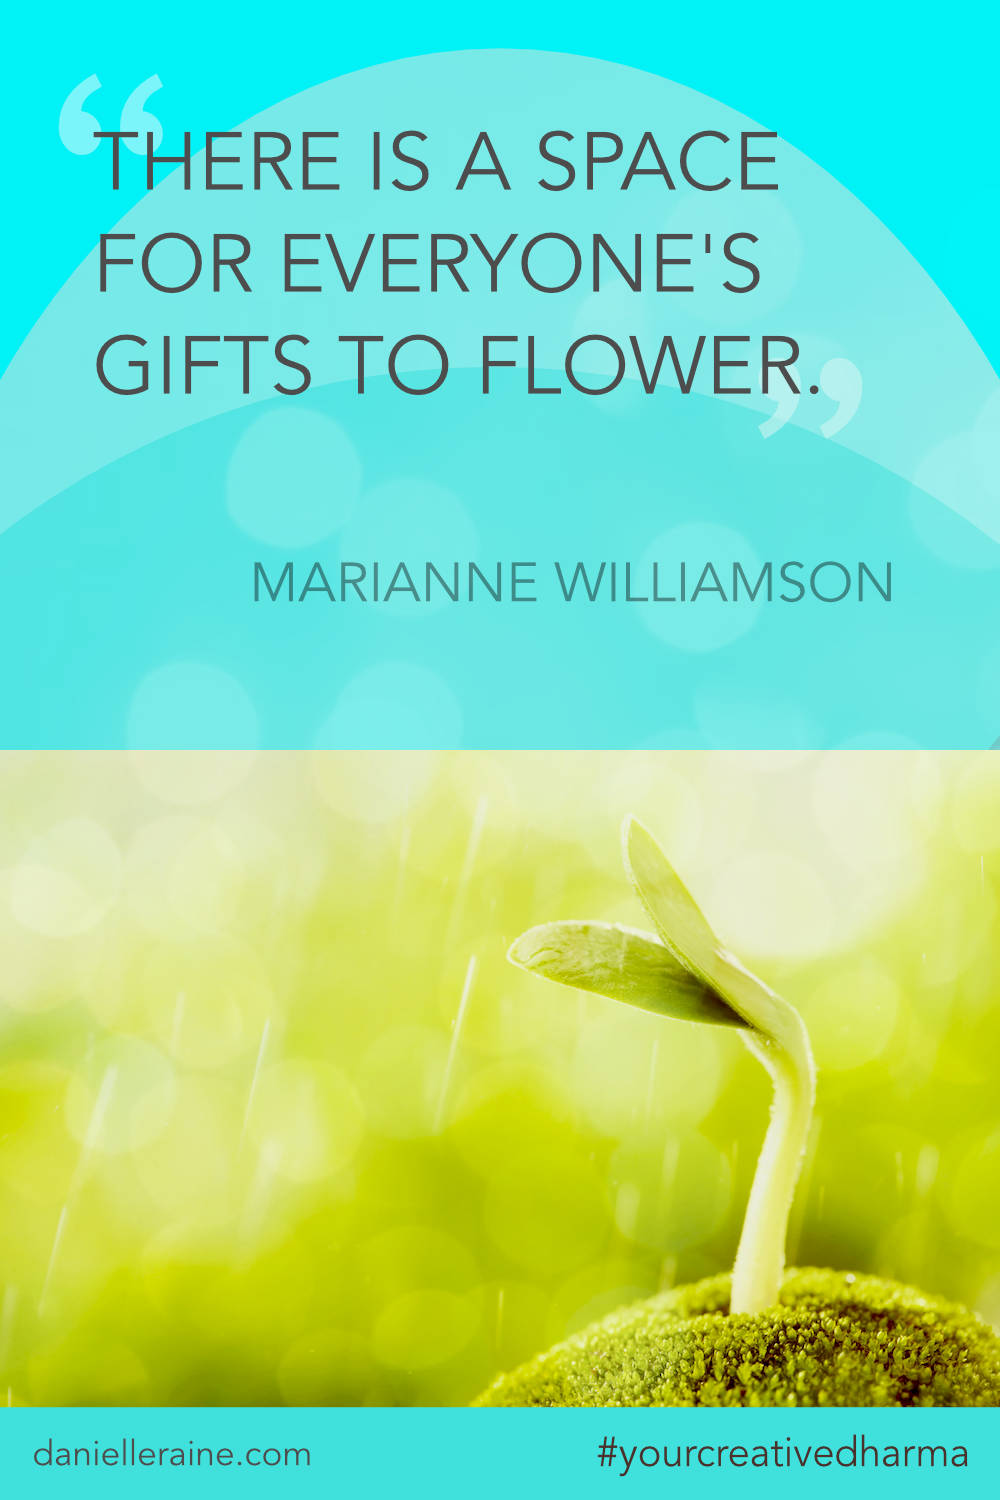 Your Creative Dharma quote marianne williamson gifts to flower